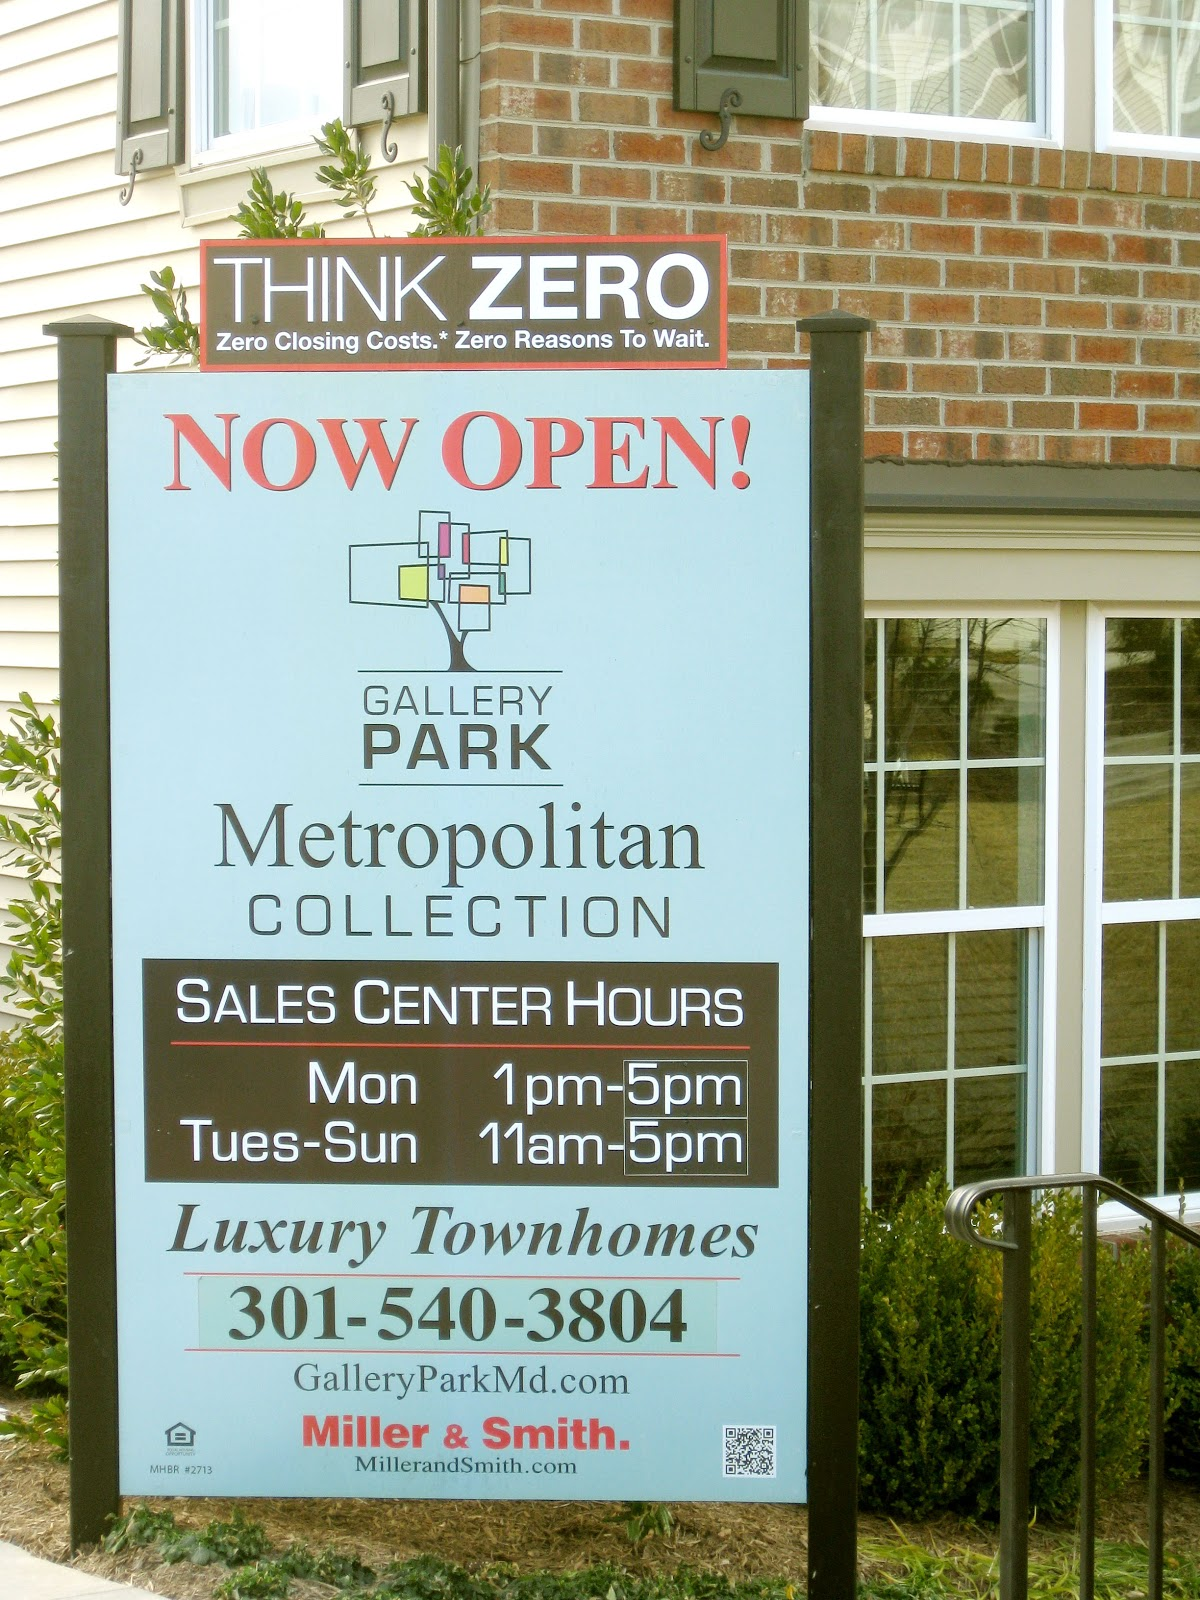 think zero - zero closing costs and zero reasons to wait with Miller and Smith for new homes in Maryland